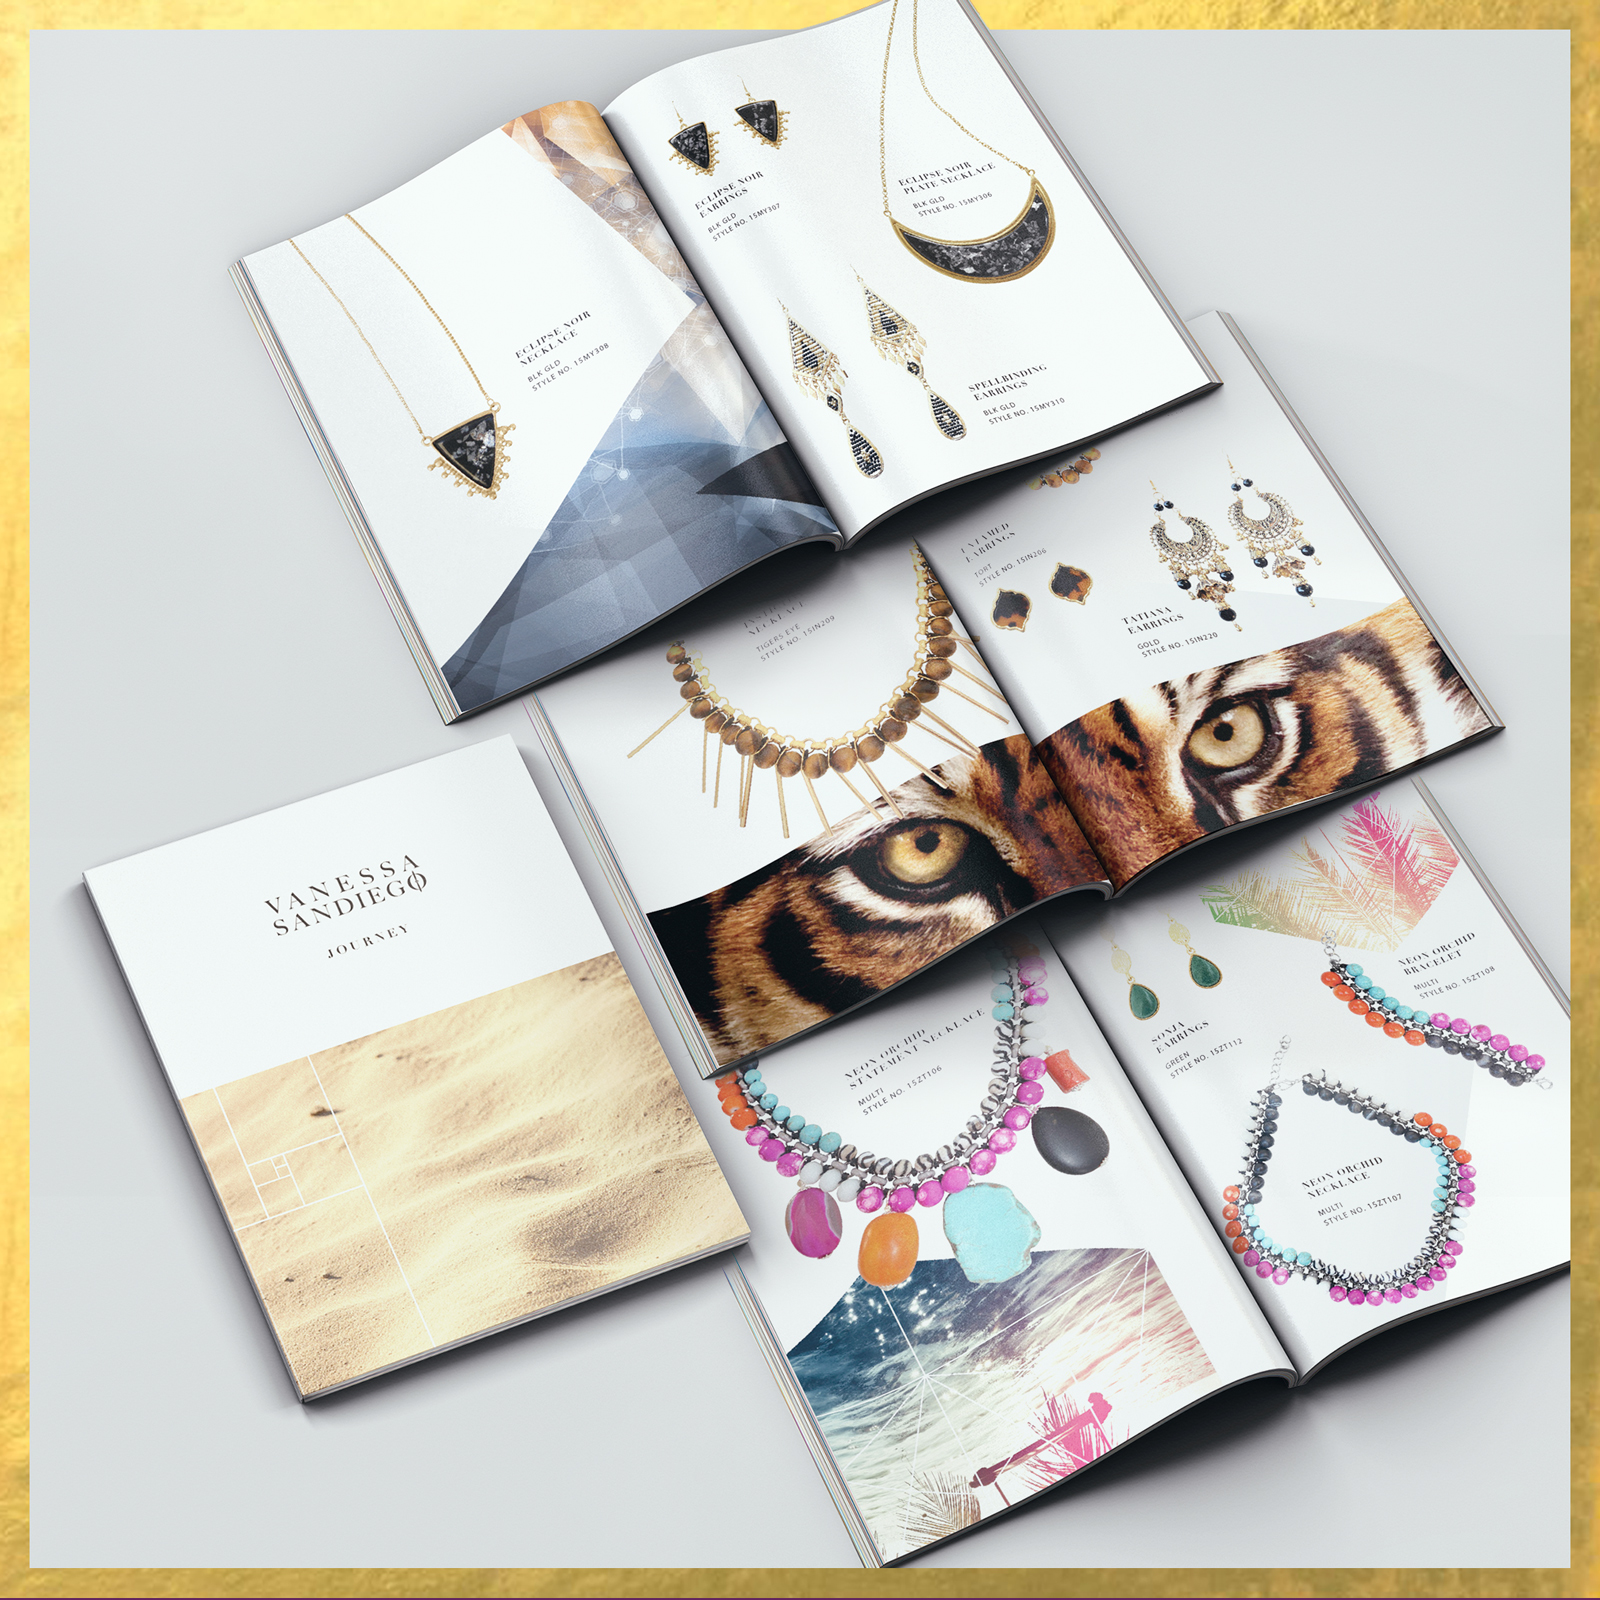 Look-book for jewellery range - Vanessa Sandiego.